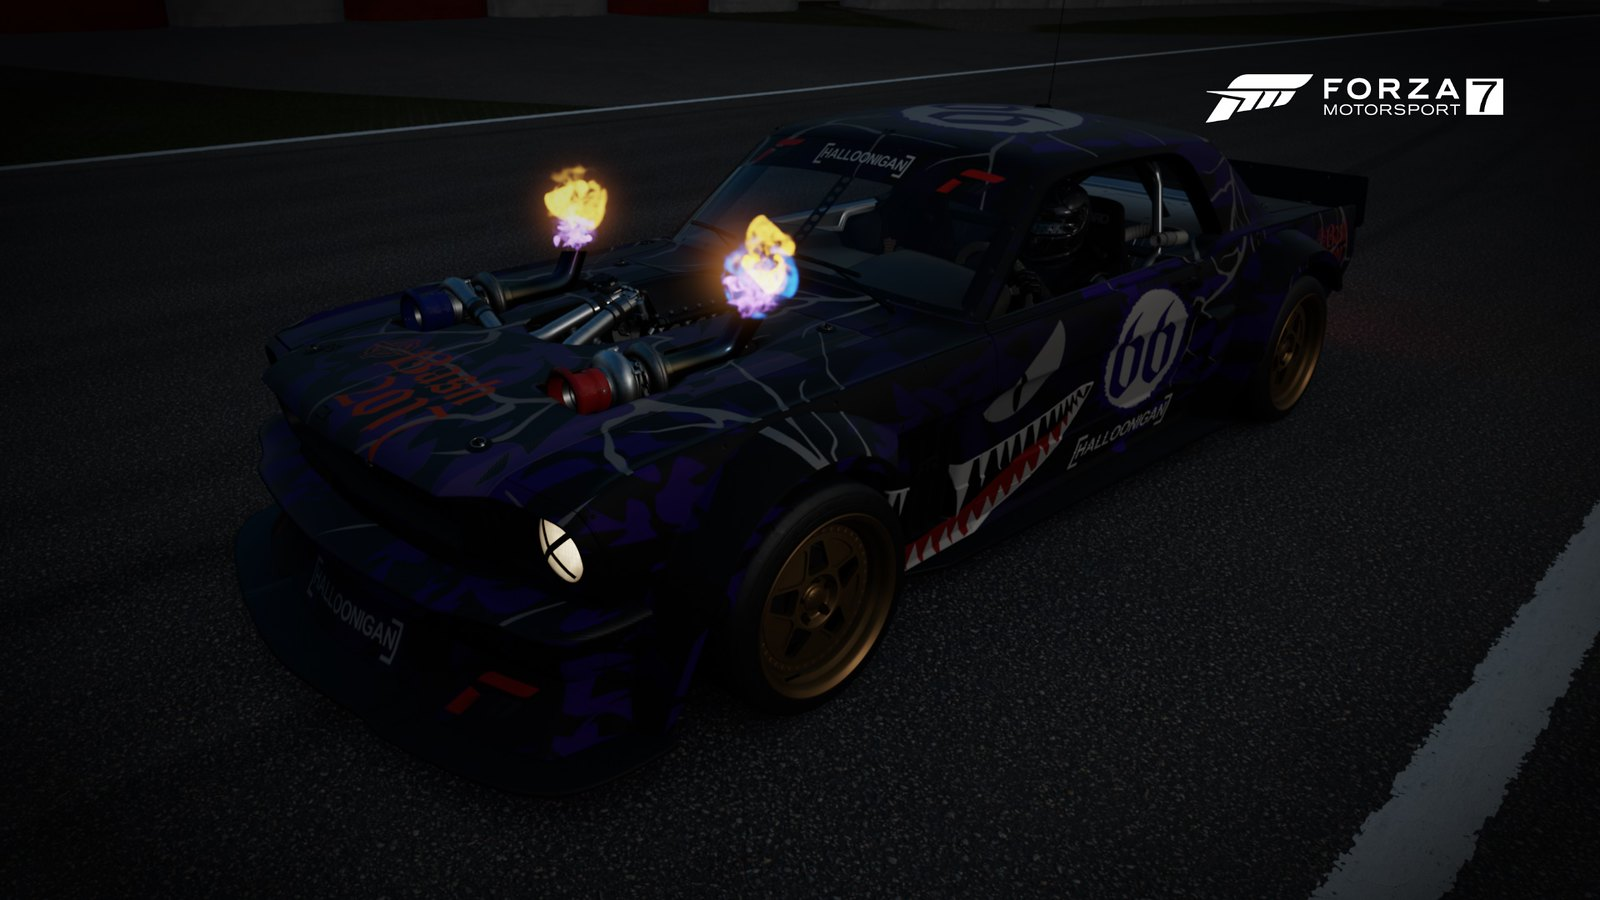 Fm7 Contests Image Archive Of The Turn 10 Contest Winners Week Game Speed Circuit 3m Sports 1971 Racing Vintage Matheusmsts Hoonigan Ford Hoonicorn Mustang 1965 Fantasy